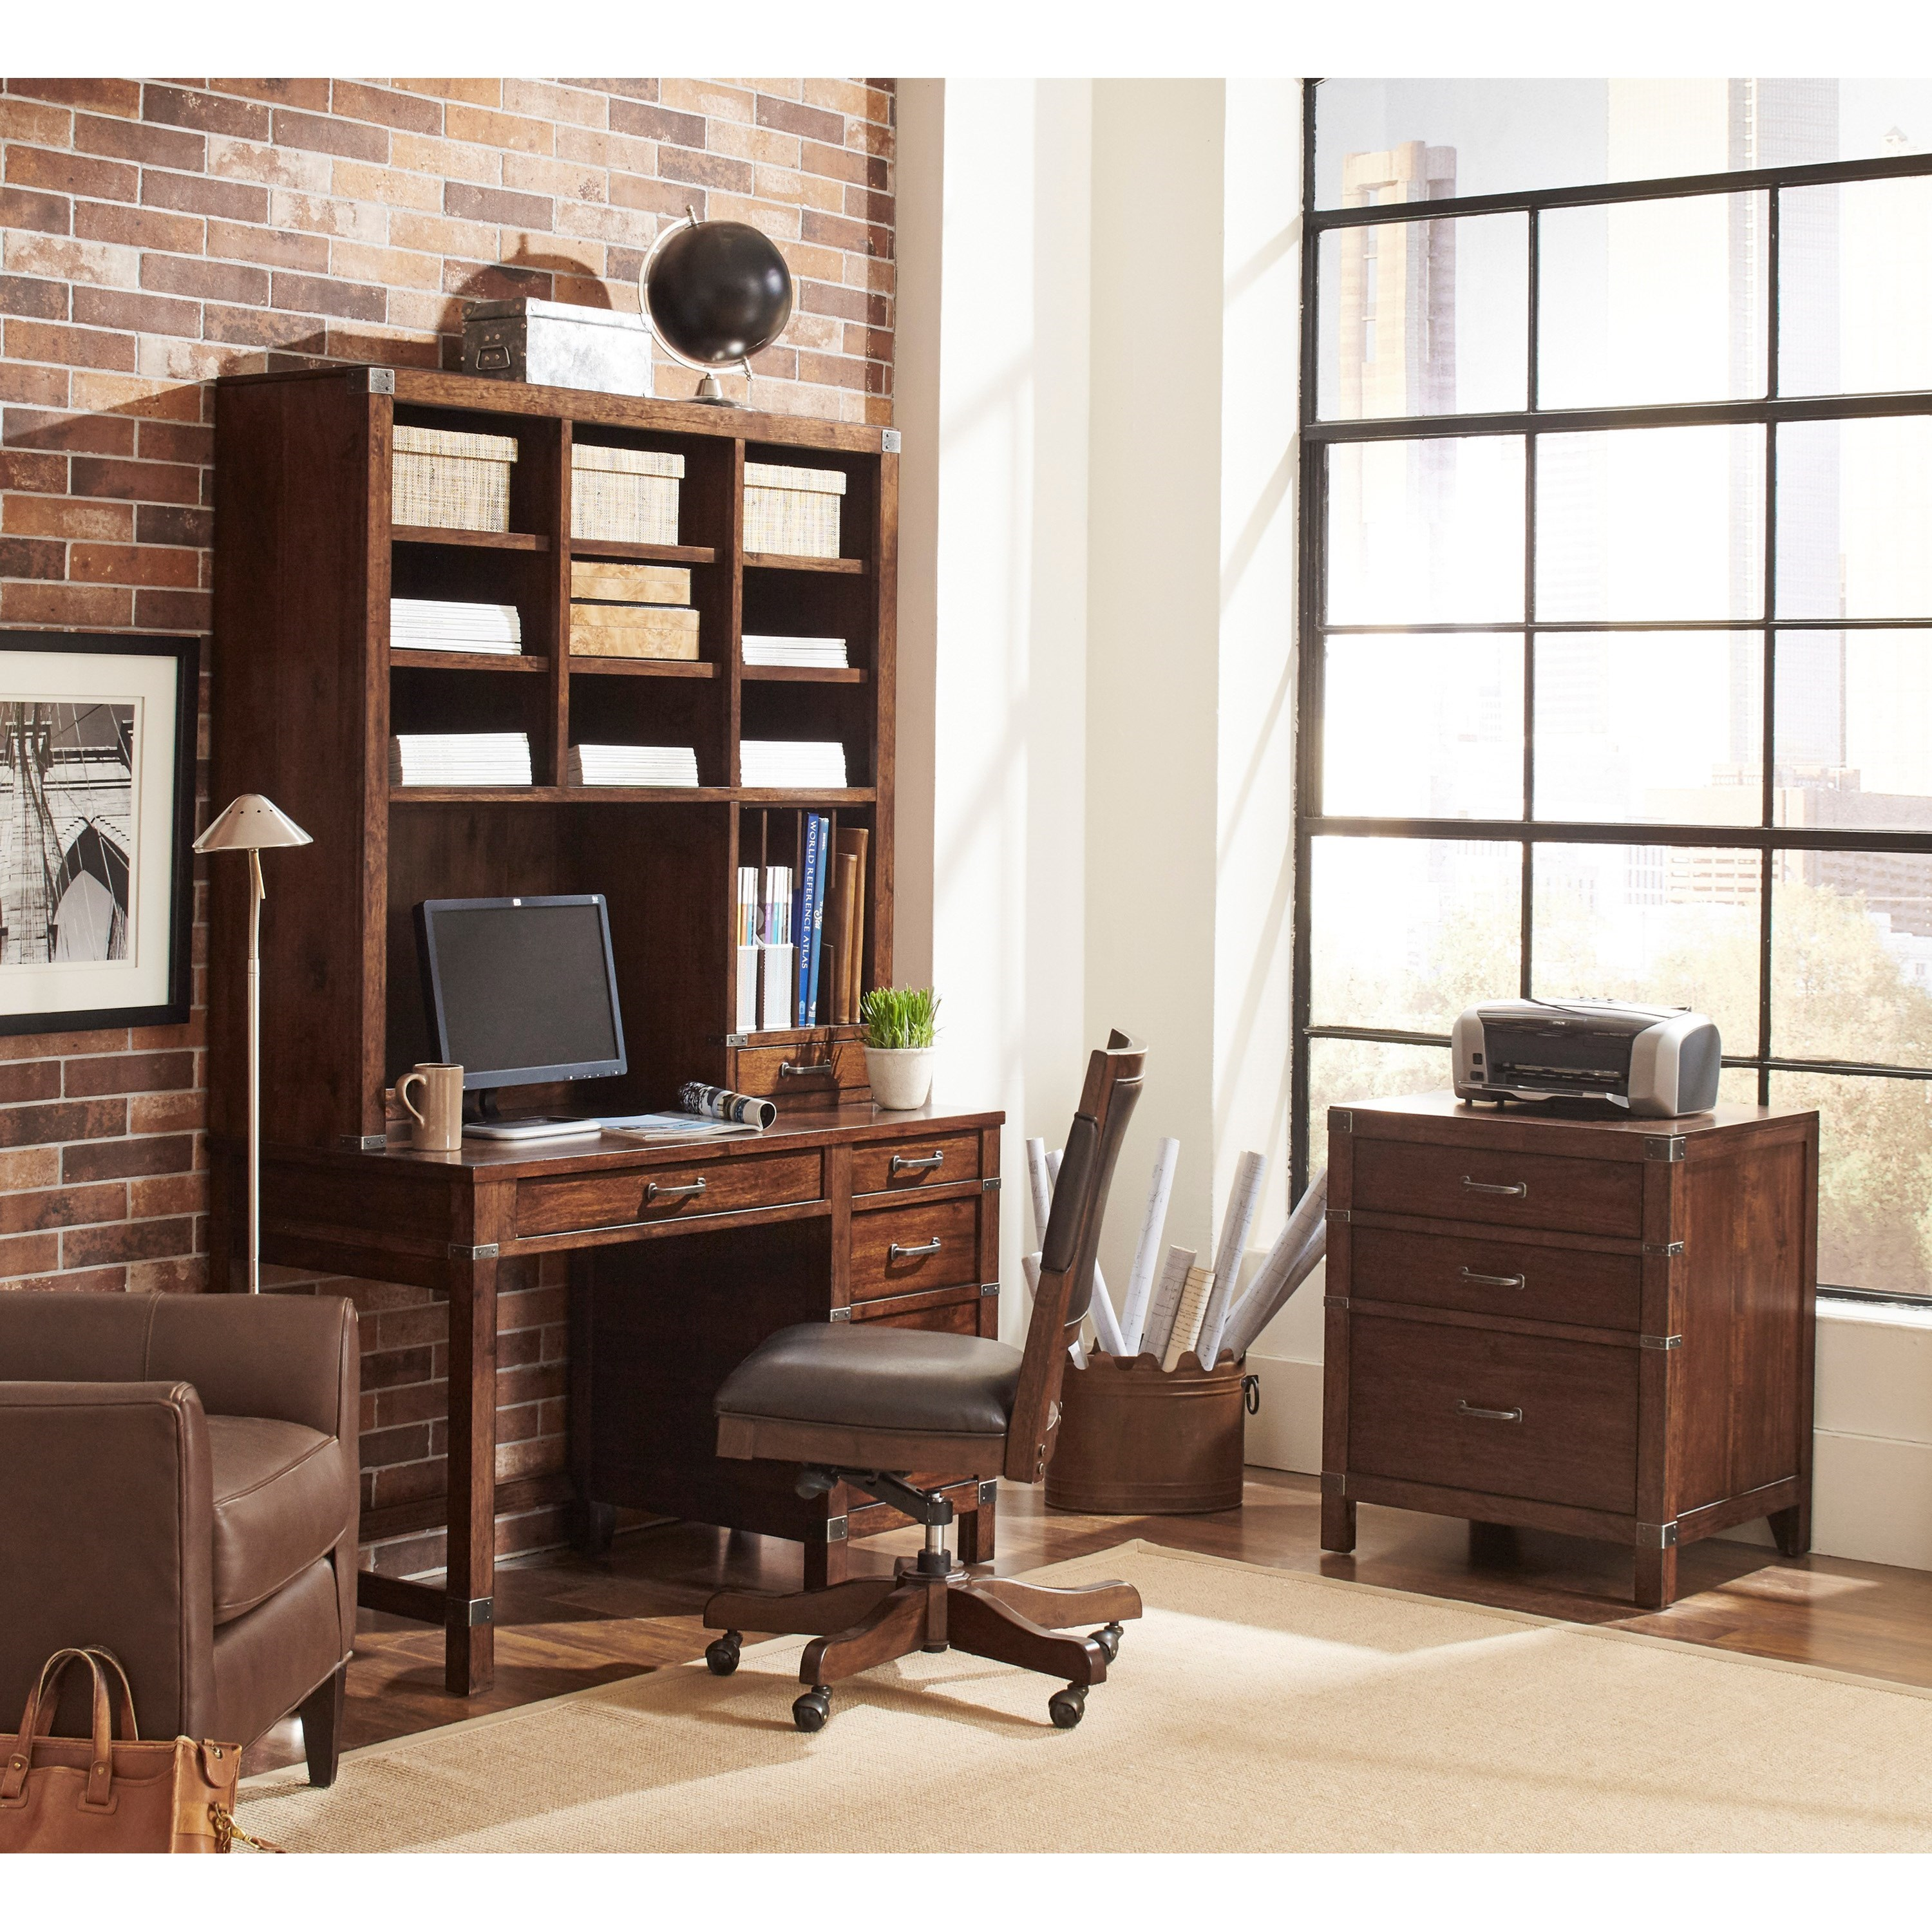 Aspenhome Canfield Icf 350 50 Single Pedestal Desk With